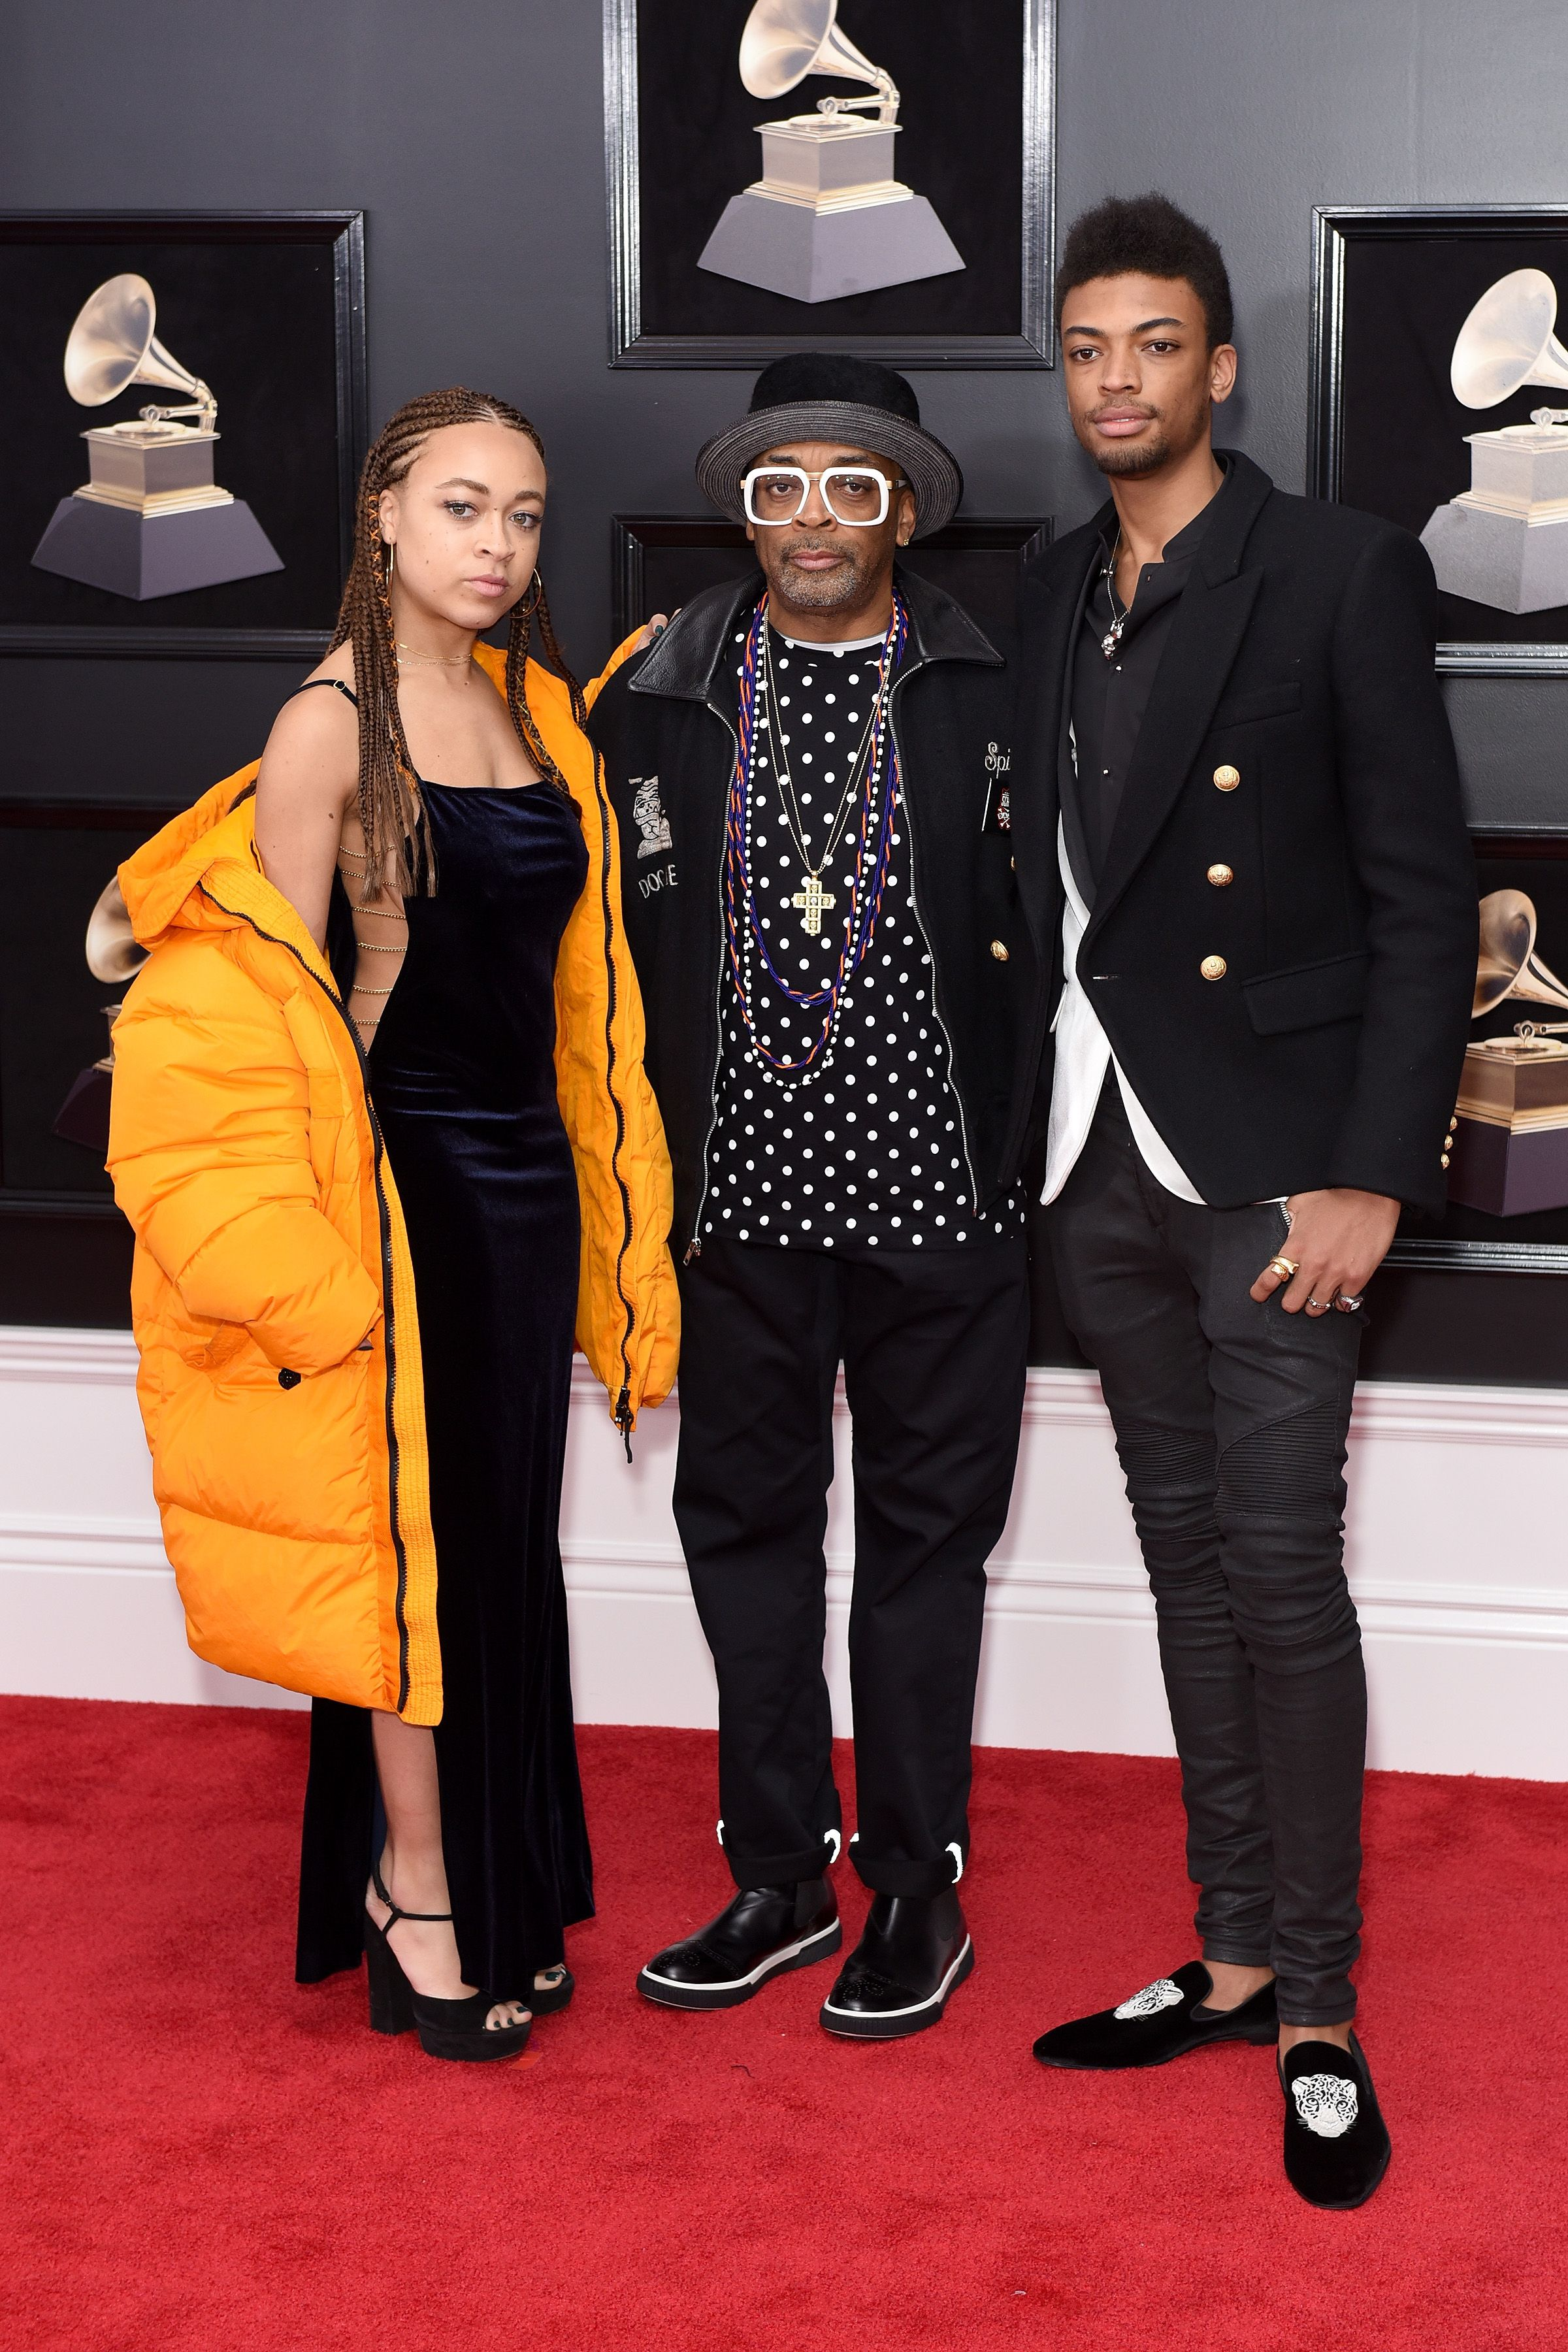 https://hips.hearstapps.com/hmg-prod.s3.amazonaws.com/images/satchel-lee-spike-lee-and-jackson-lee-attends-the-60th-news-photo-1614018112.?crop=1xw:1xh;center,top